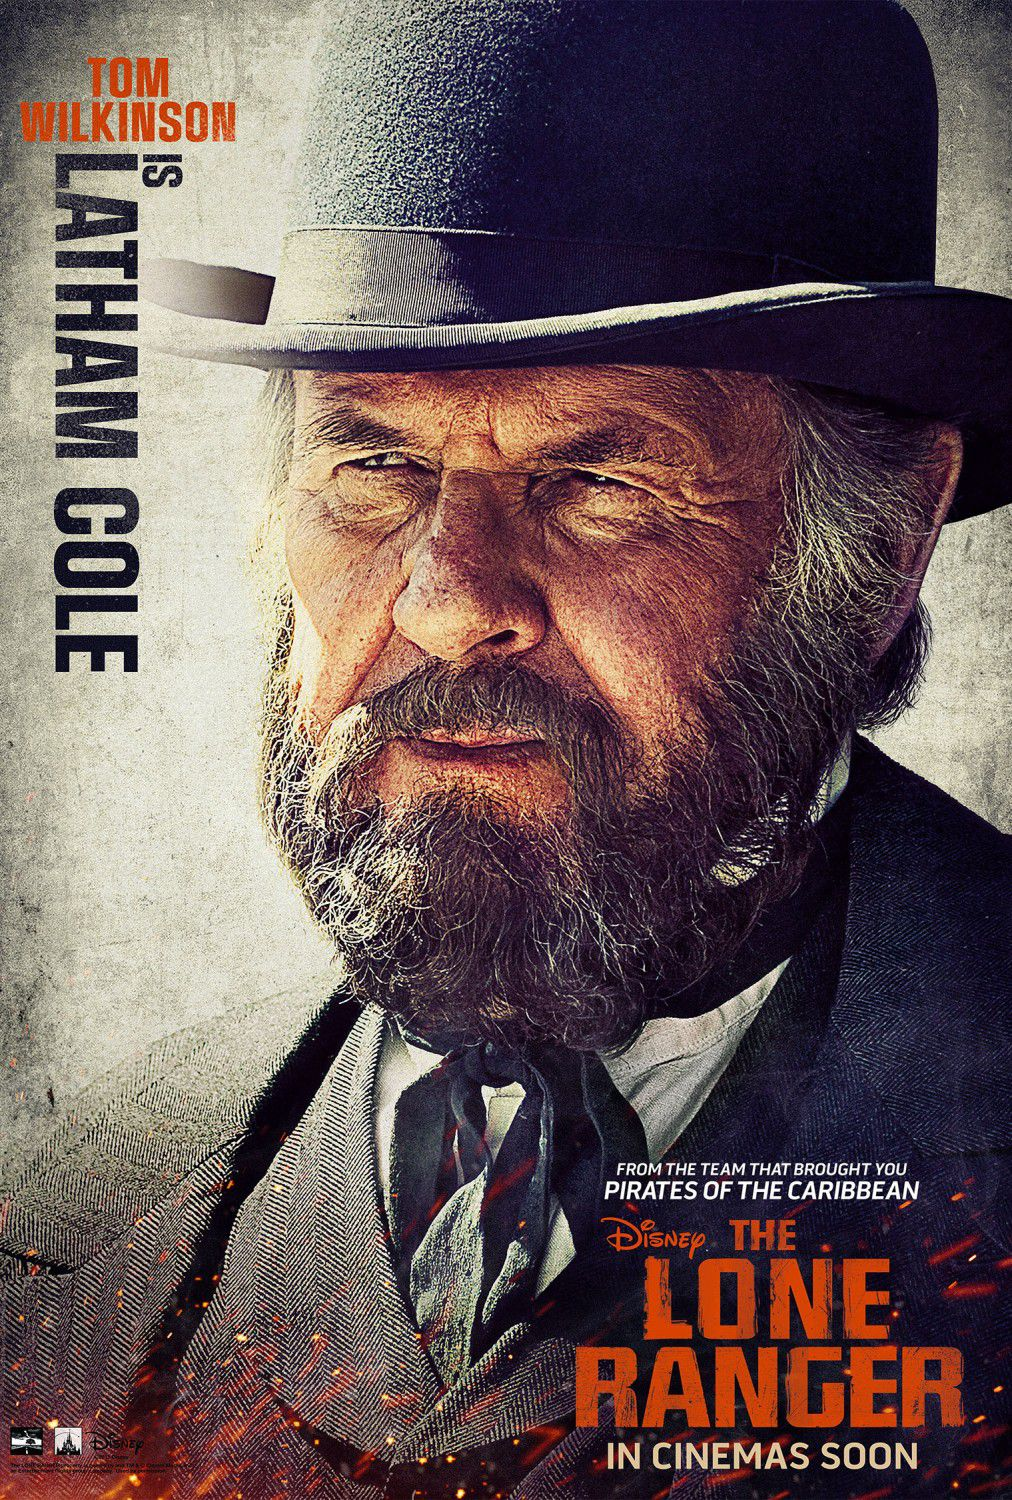 Tom Wilkinson as Latham Cole